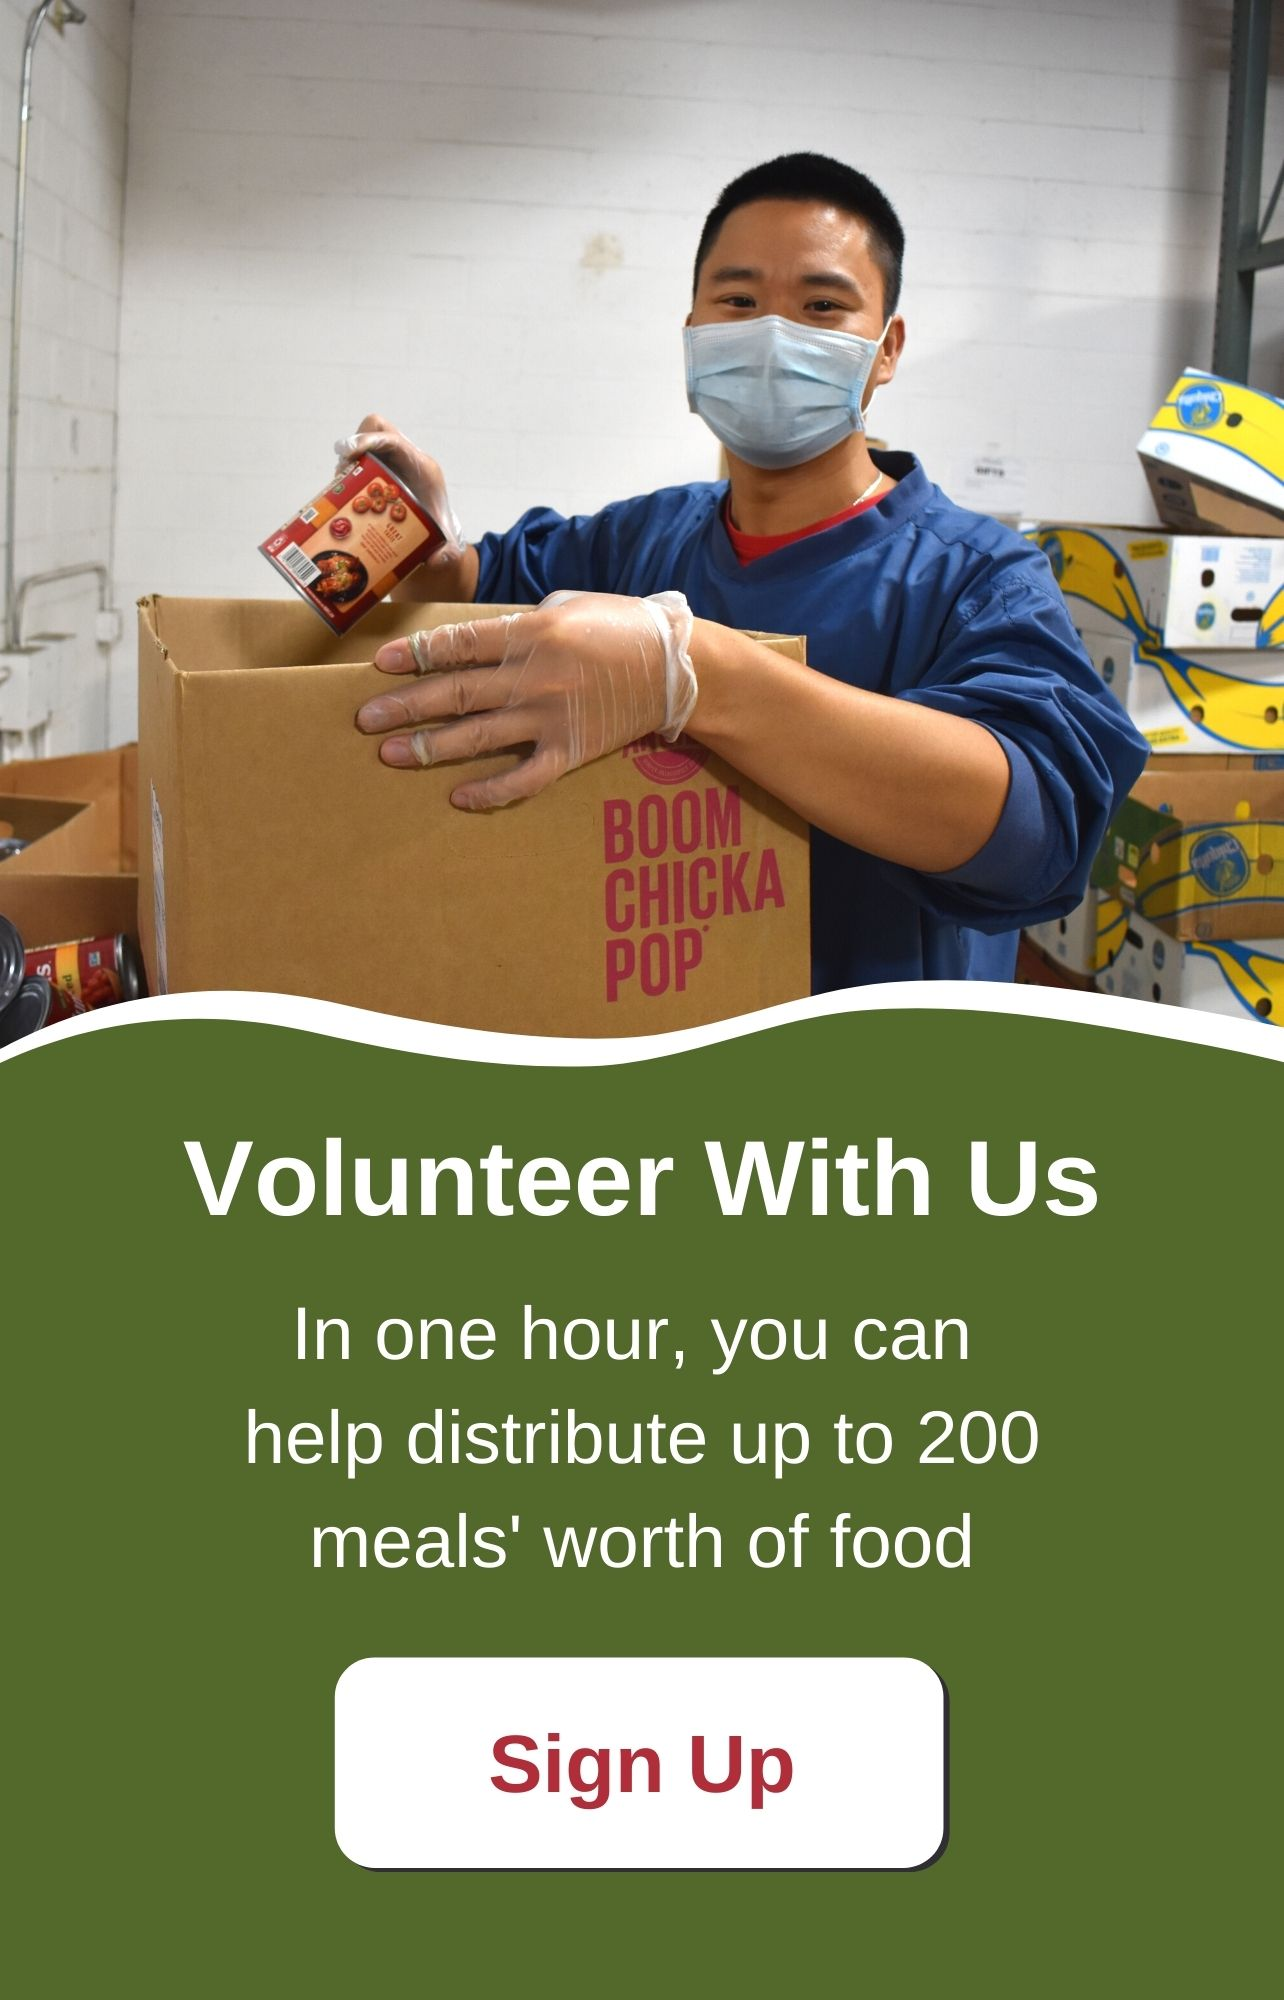 Volunteer with us. In one hour, you can help distribute up to 200 meals' worth of food. Sign up.